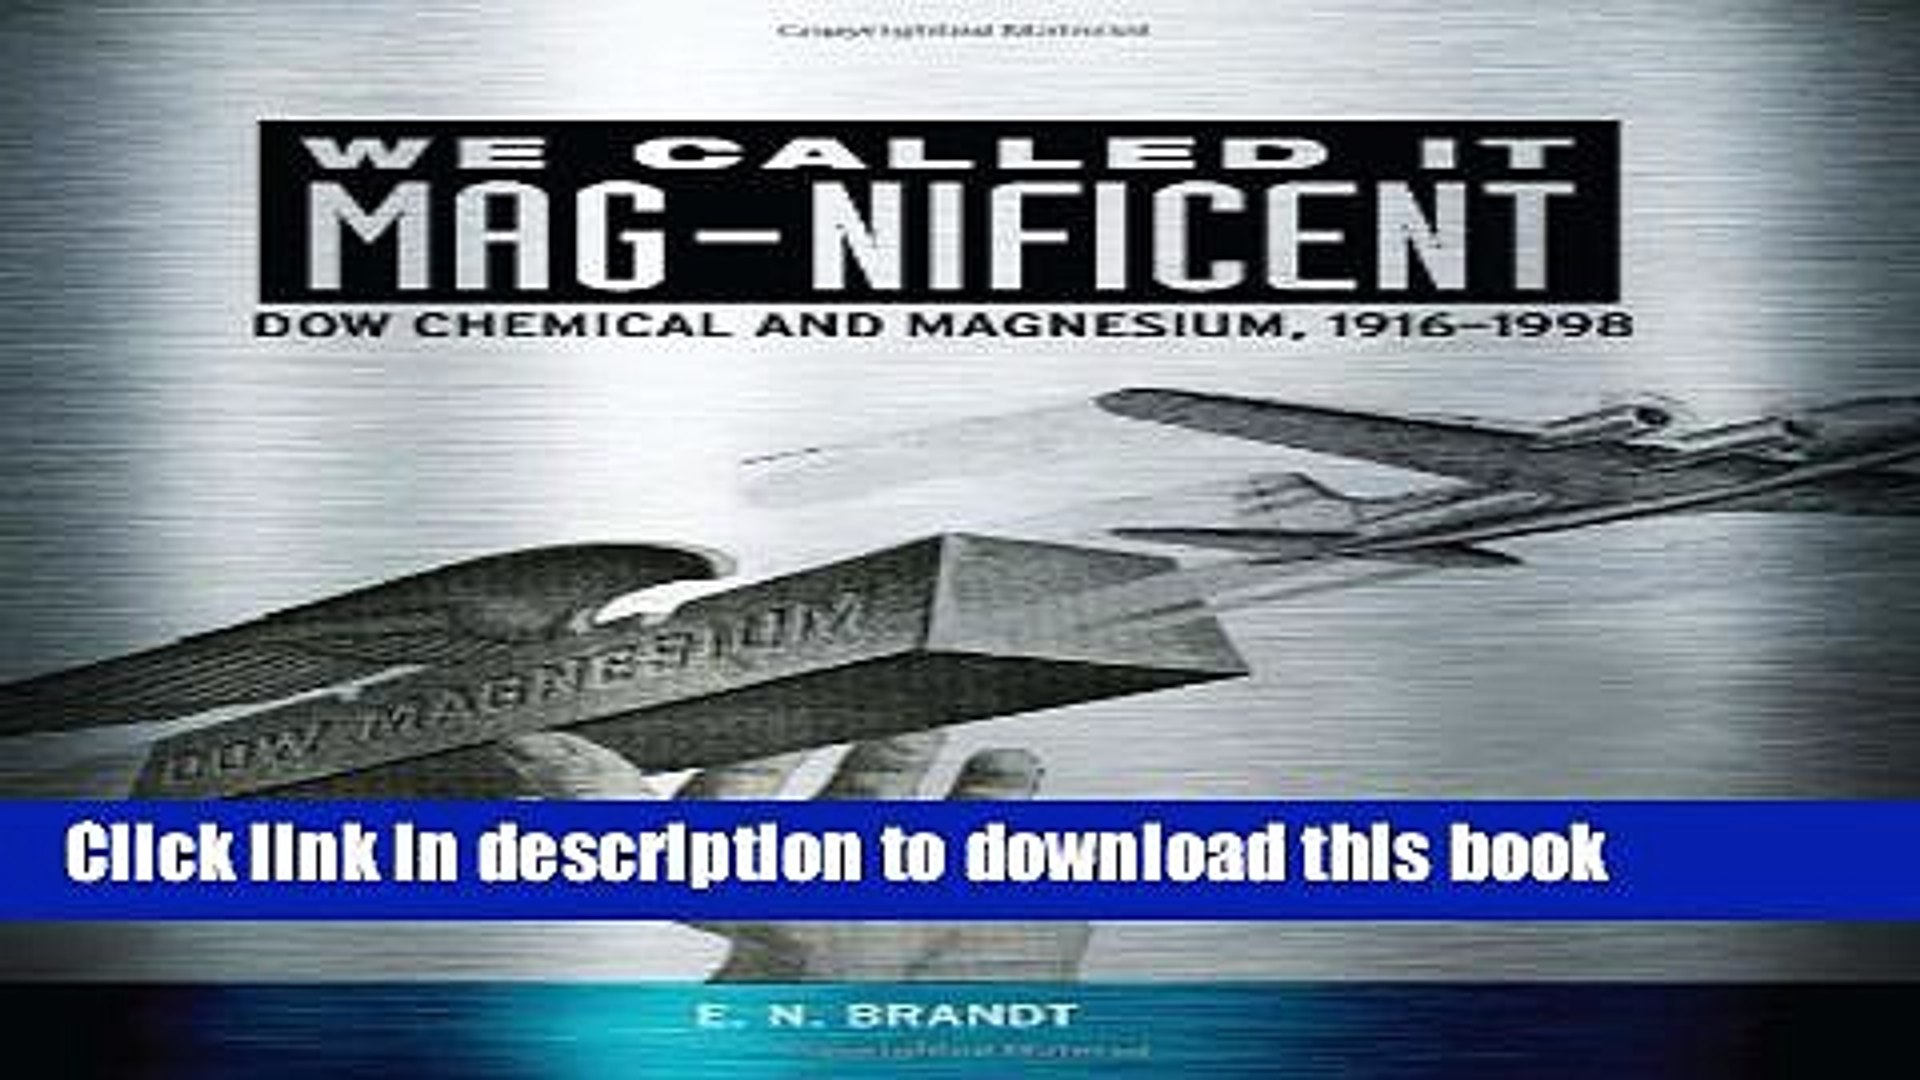 Collection Book We Called it MAG-nificent: Dow Chemical and Magnesium, 1916-1998